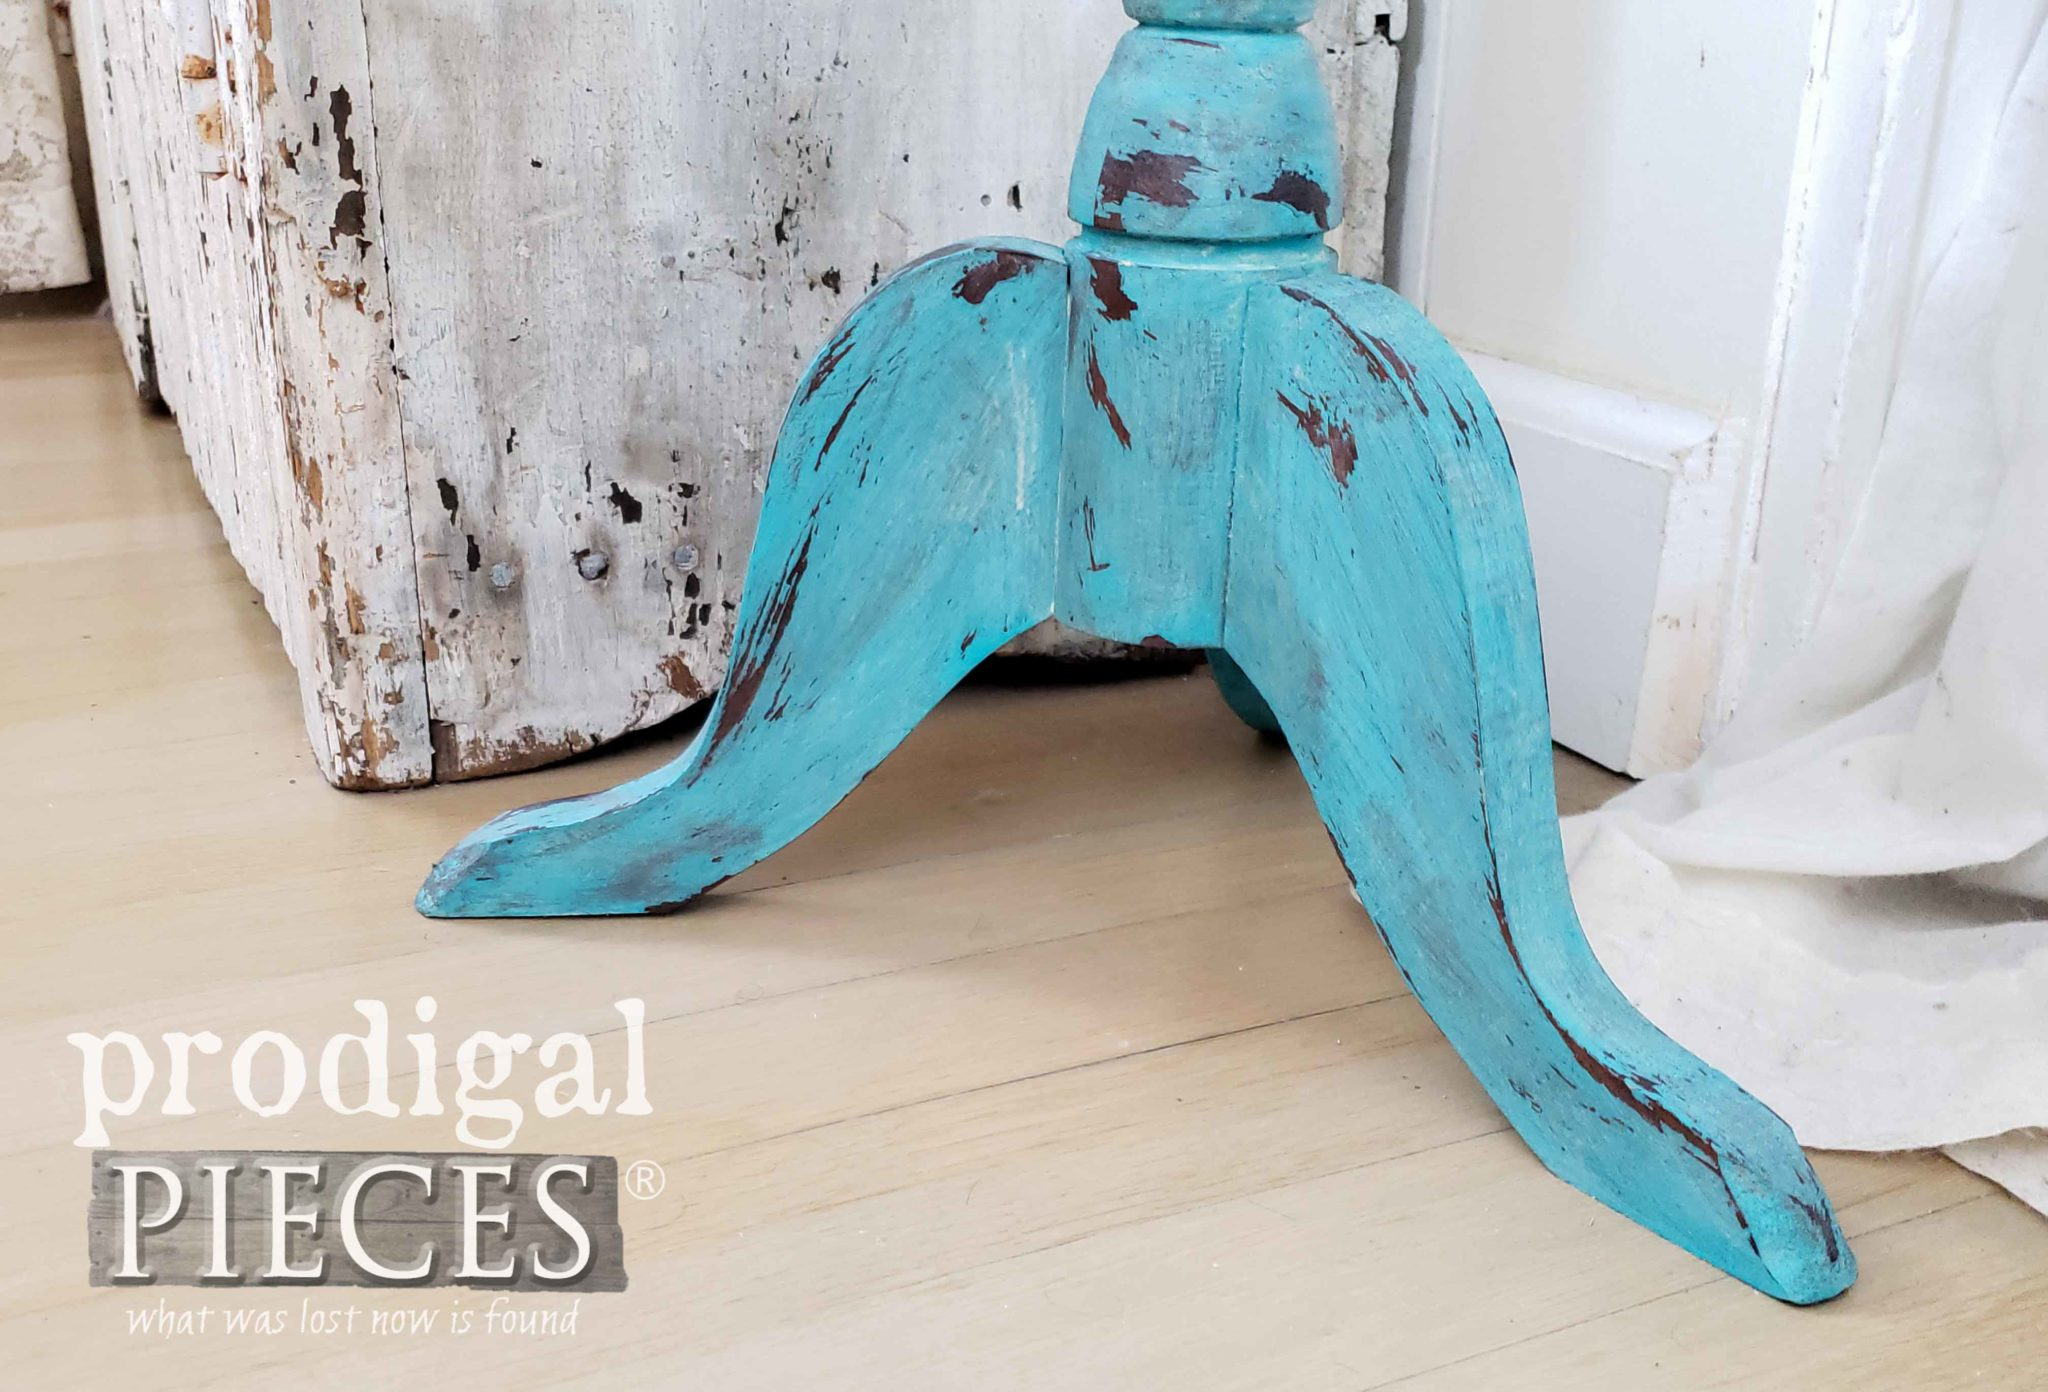 Chippy Blue Table Legs | prodigalpieces.com